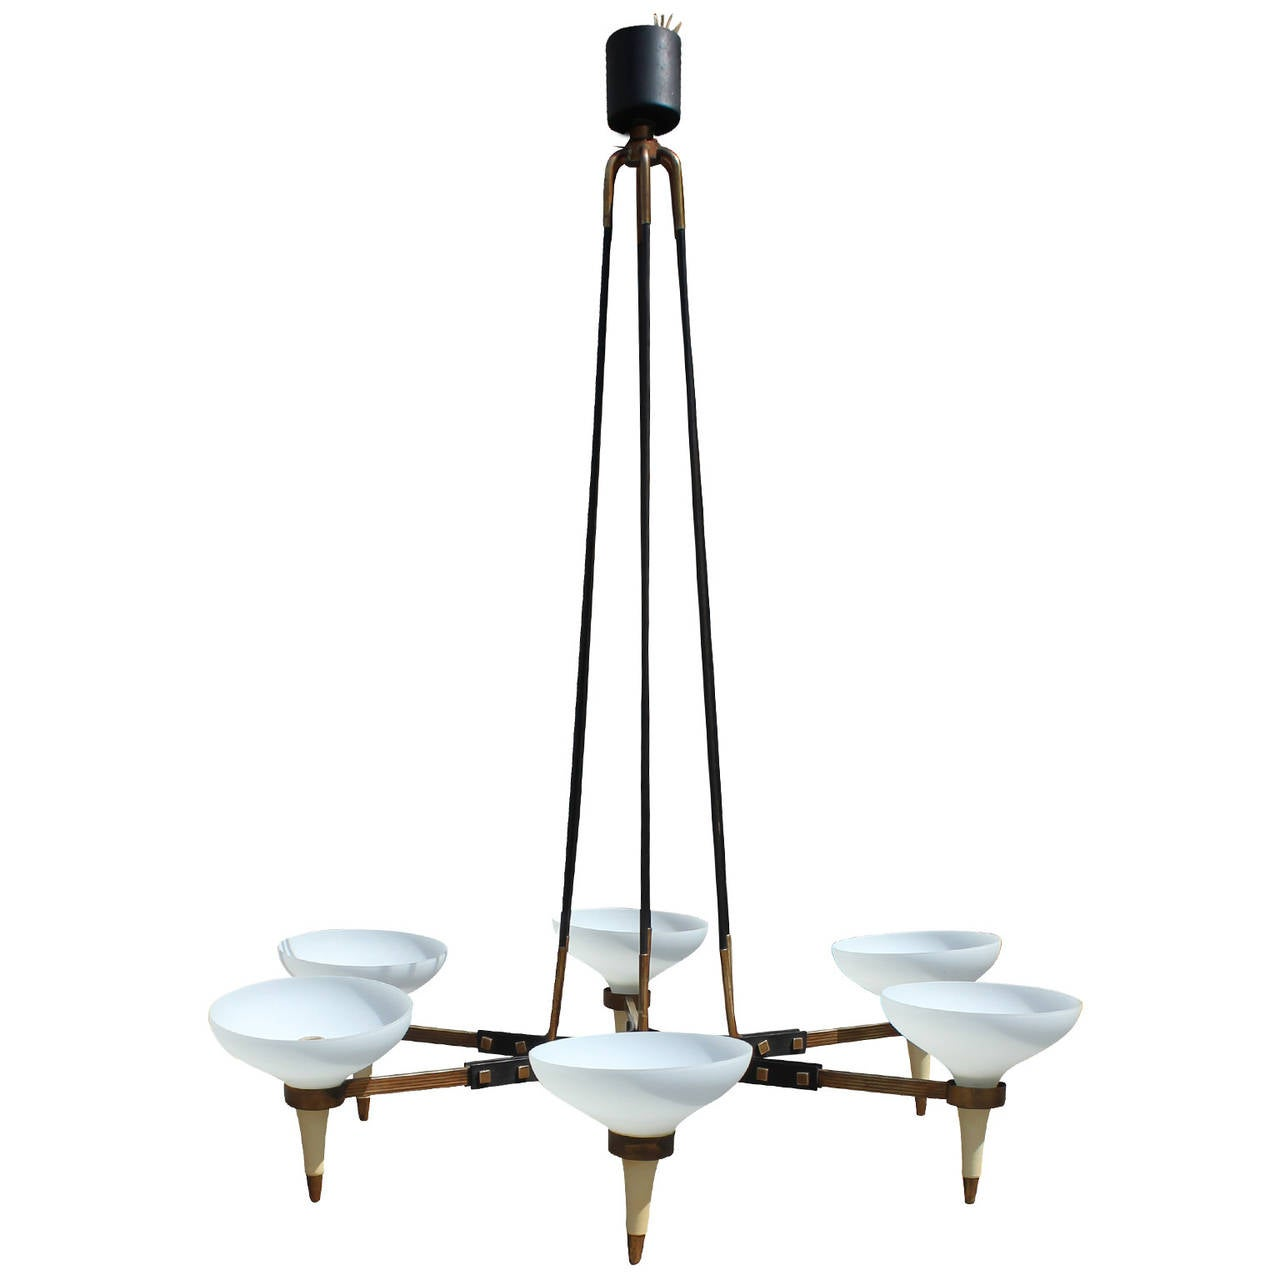 Italian Six Arm Chandelier With Brass Accents At 1stdibs